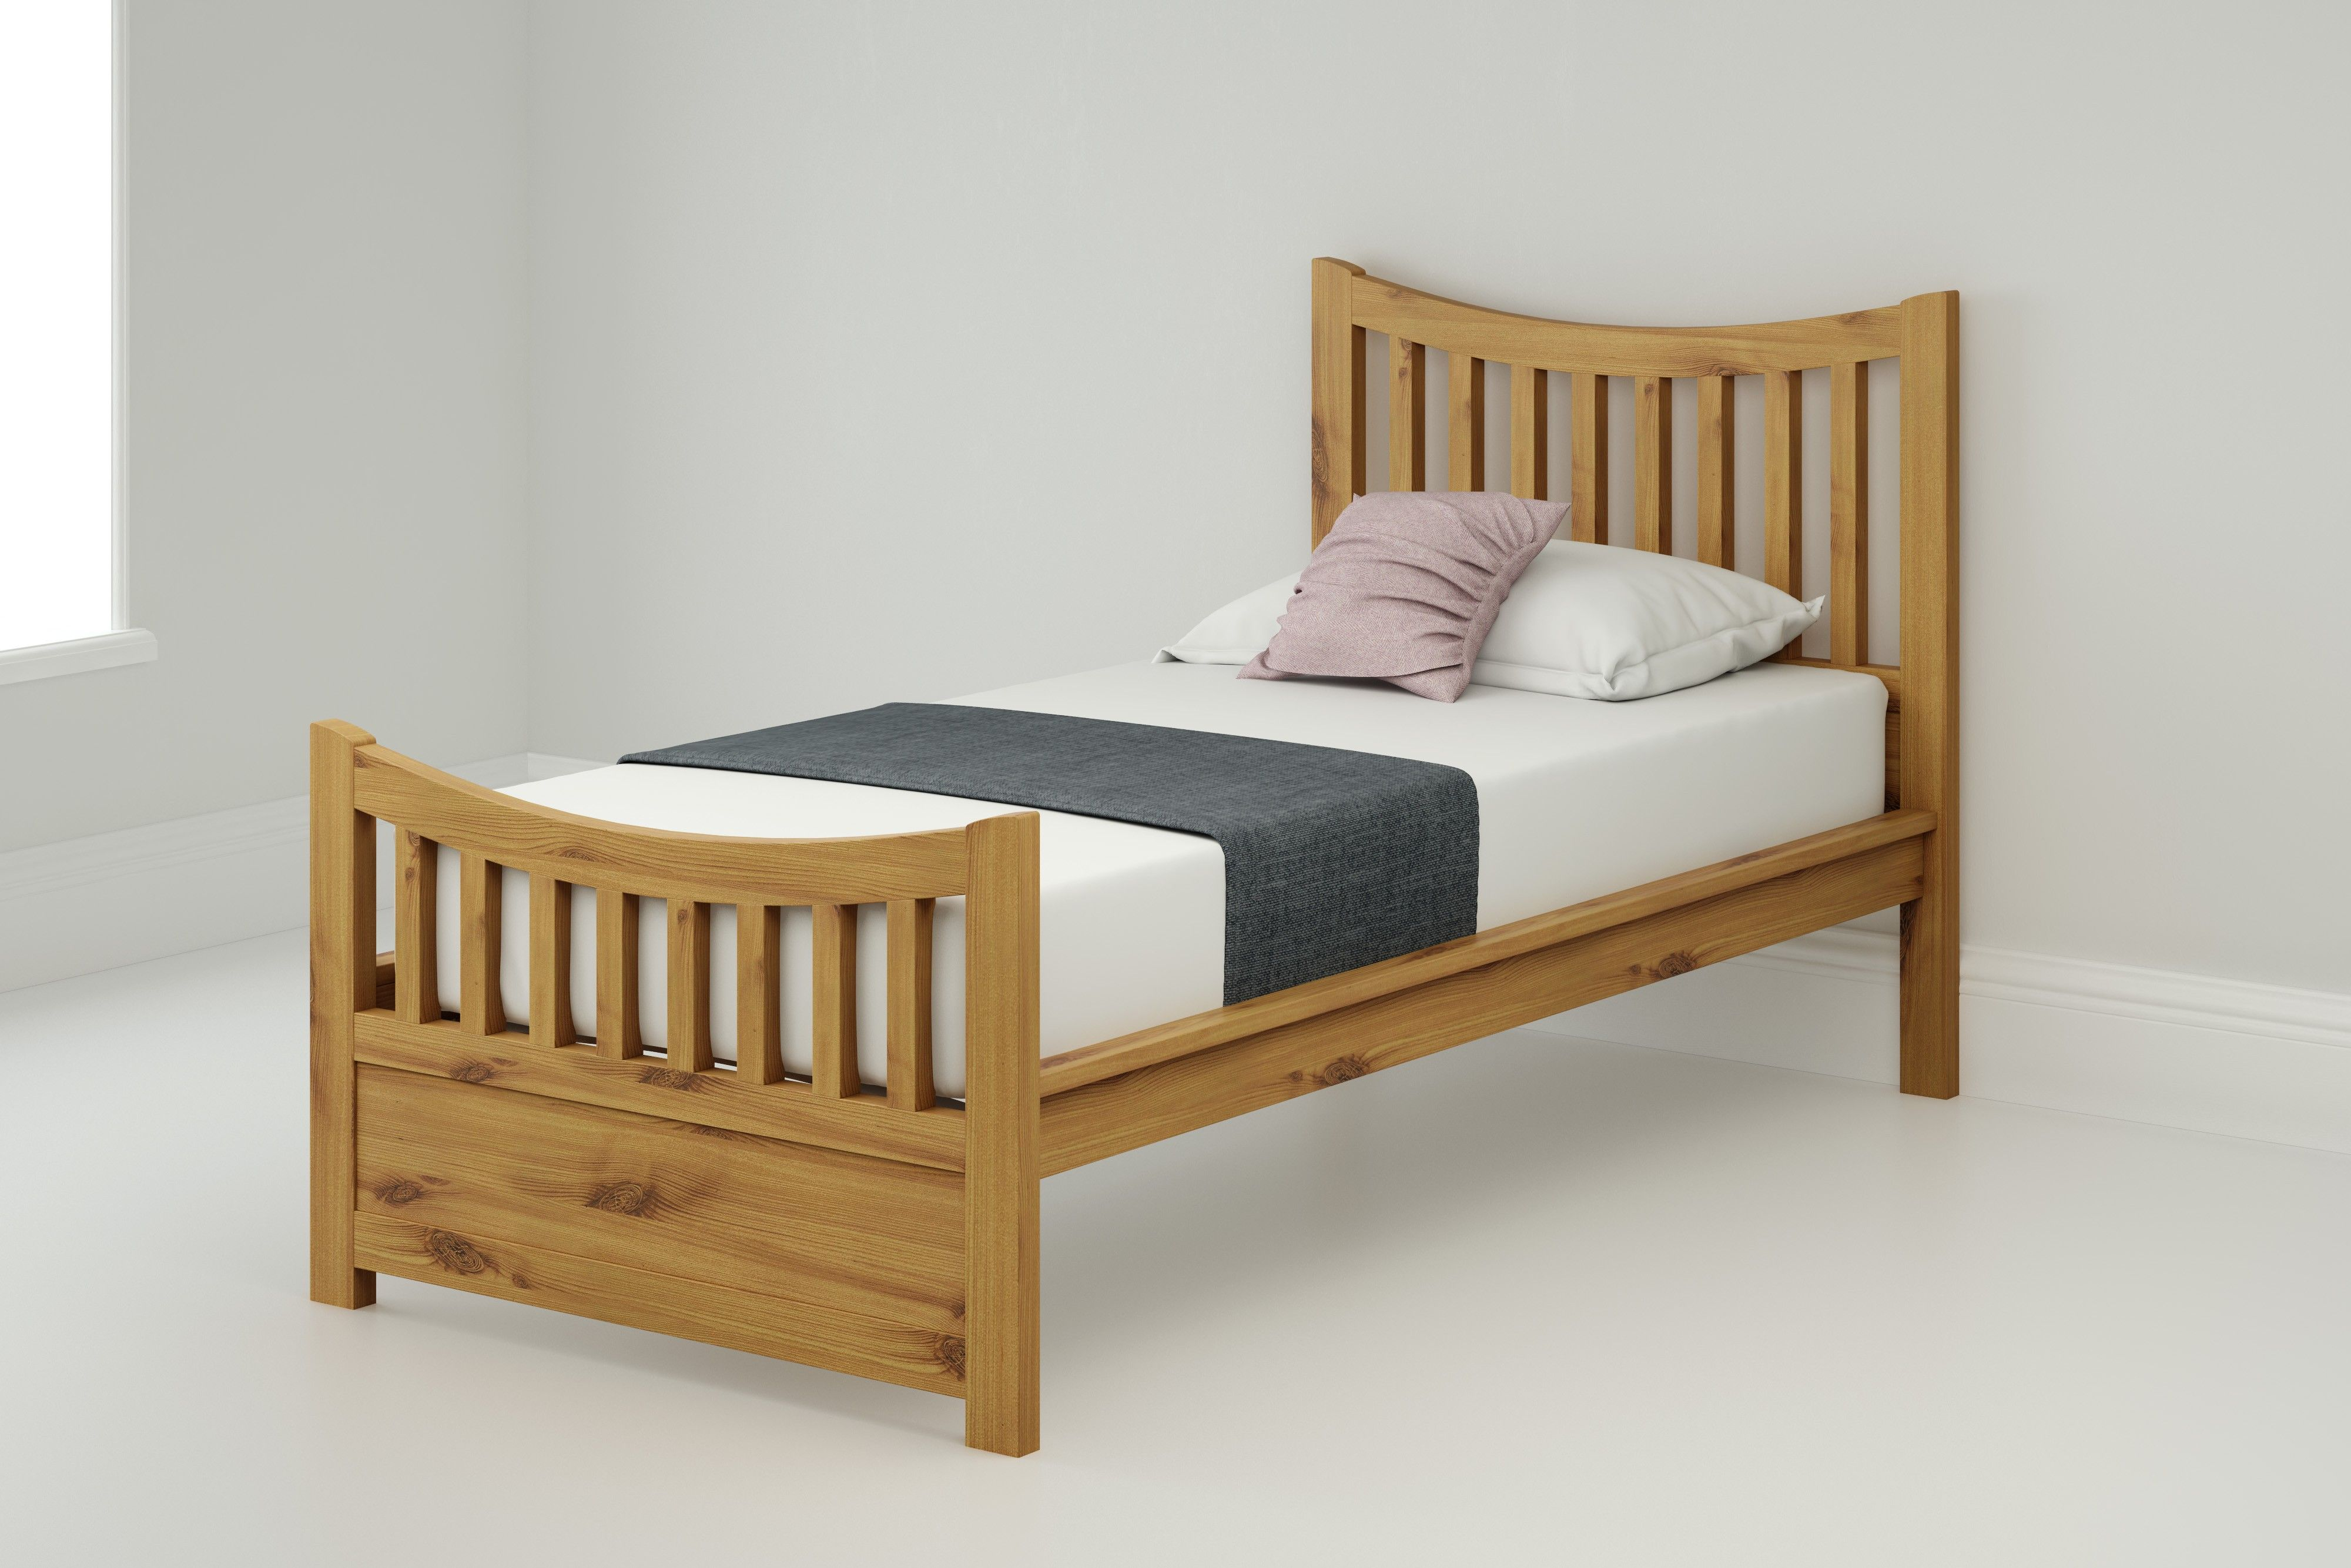 90cm Bedstead Brodie 400 With 2 Drawers Bed Wooden Bed Bed Frame